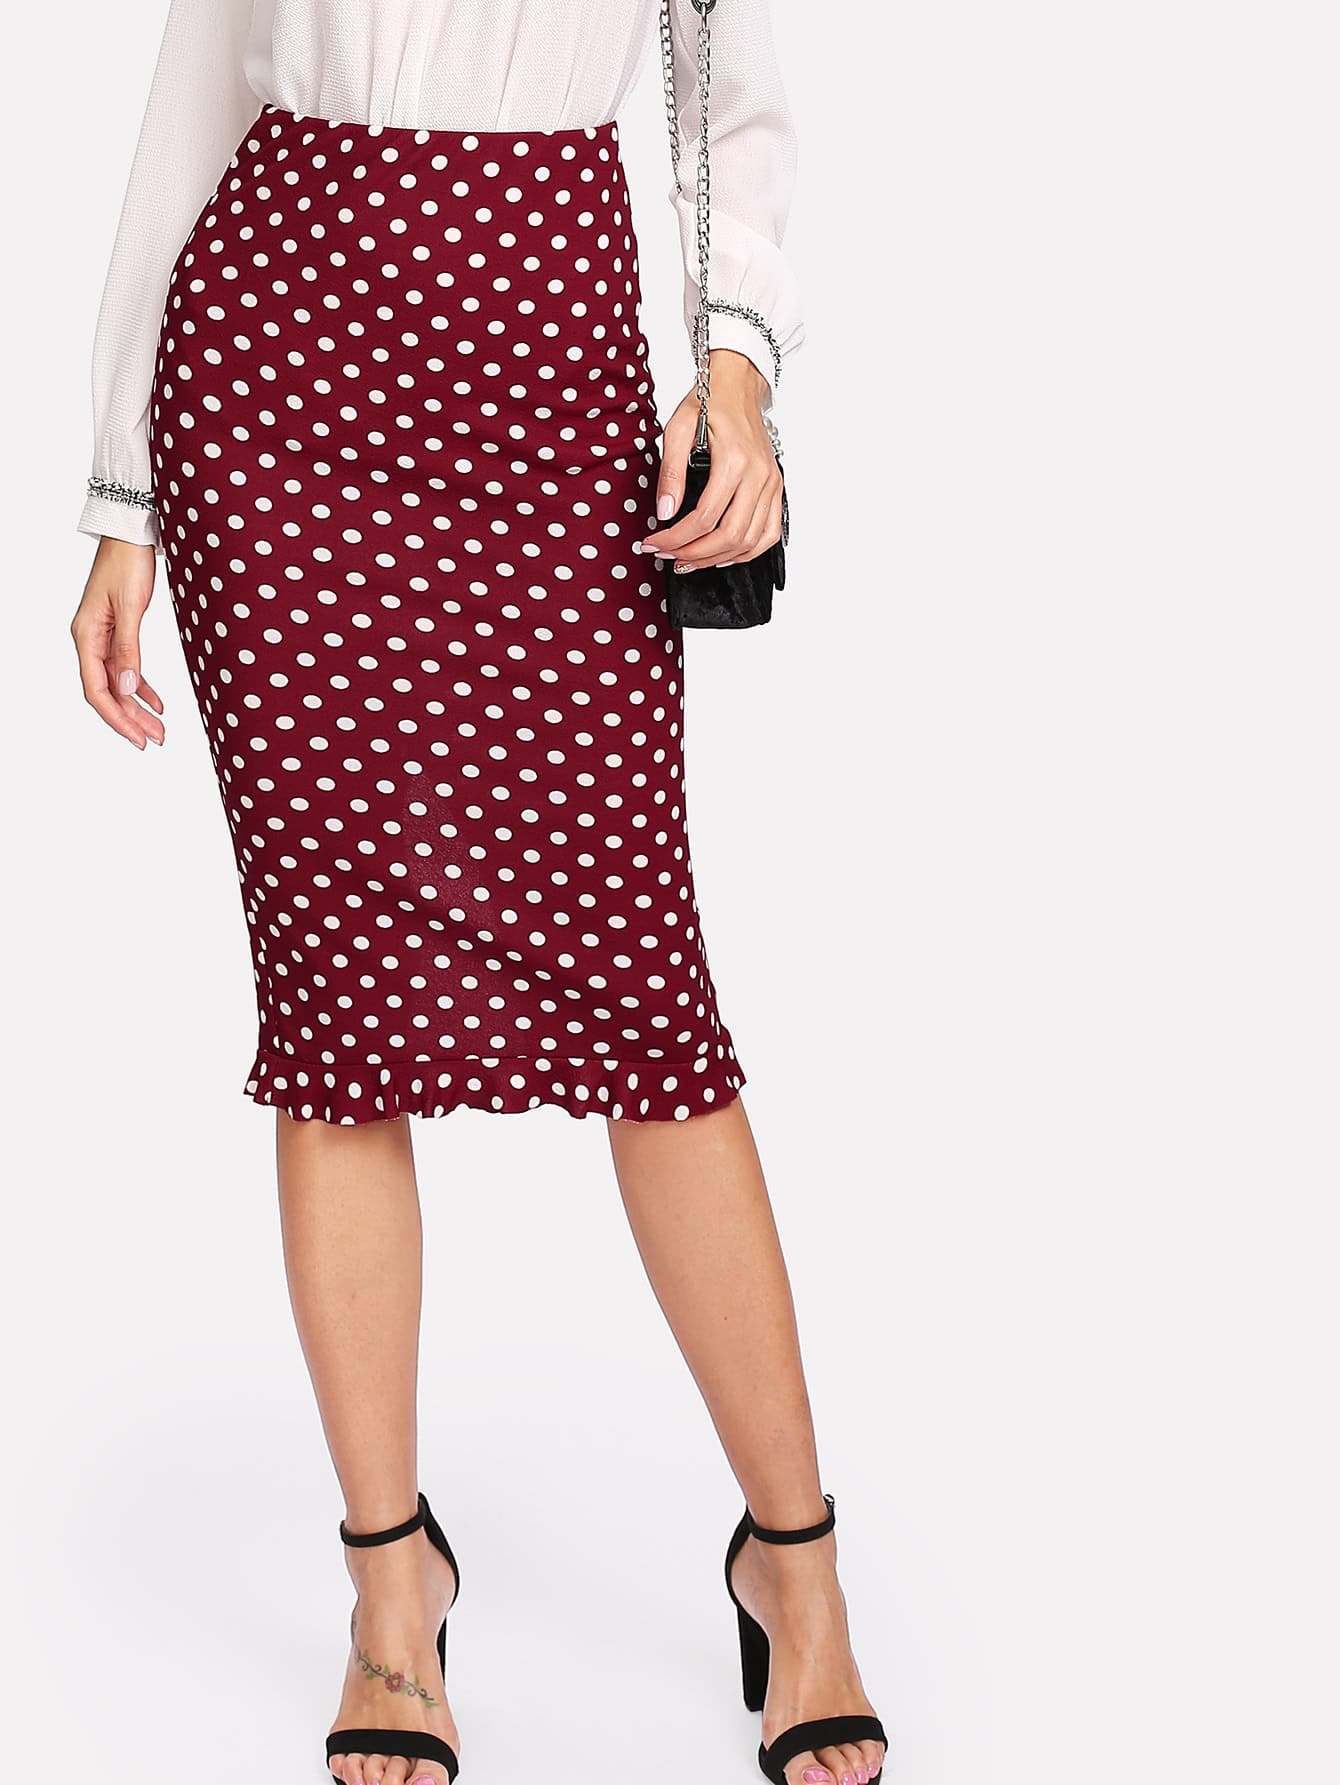 Slit Back Ruffle Hem Polka Dot Skirt polka dot slit hem contrast dress